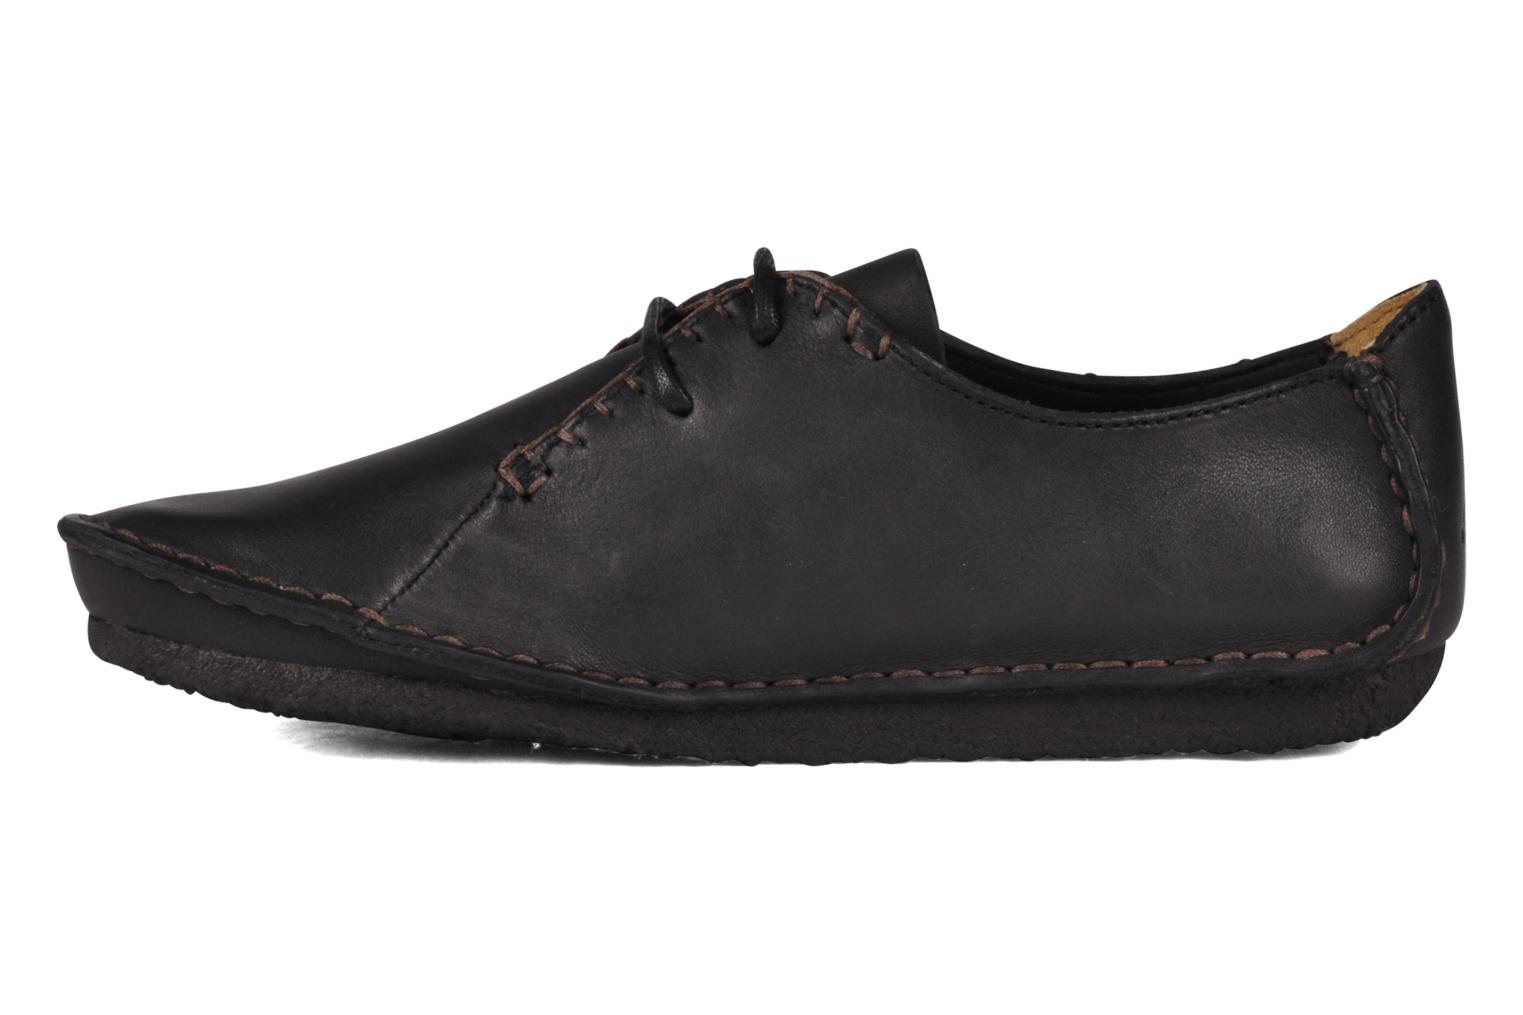 Clarks Originals Faraway Field Lace-up shoes in Black at Sarenza.co.uk (38446)